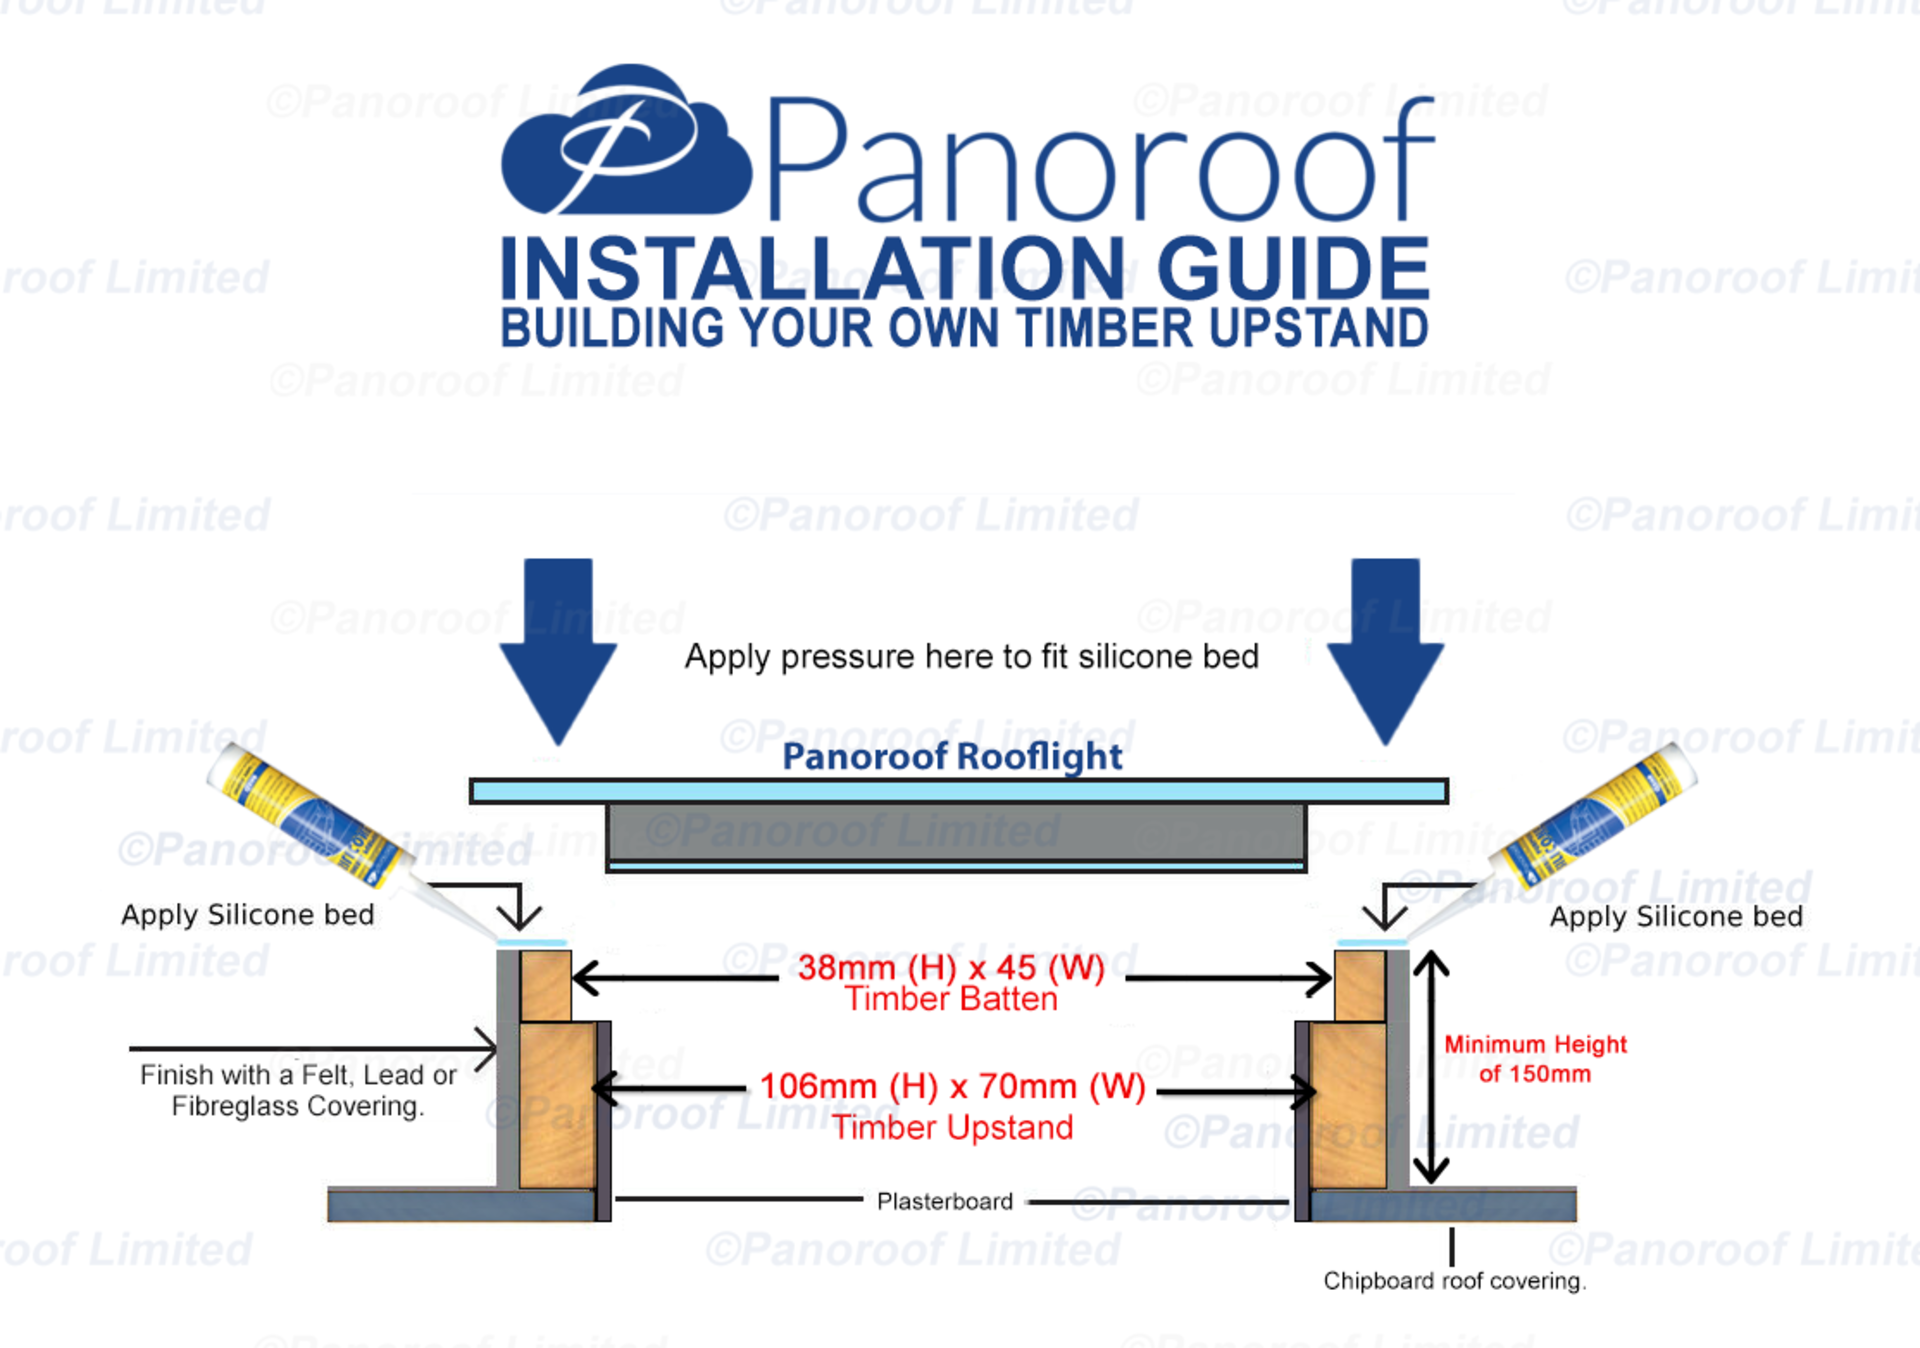 Panoroof 1500x1500mm (inside Size Visable glass area) Seamless Glass Skylight Flat Roof Rooflight - Image 3 of 6